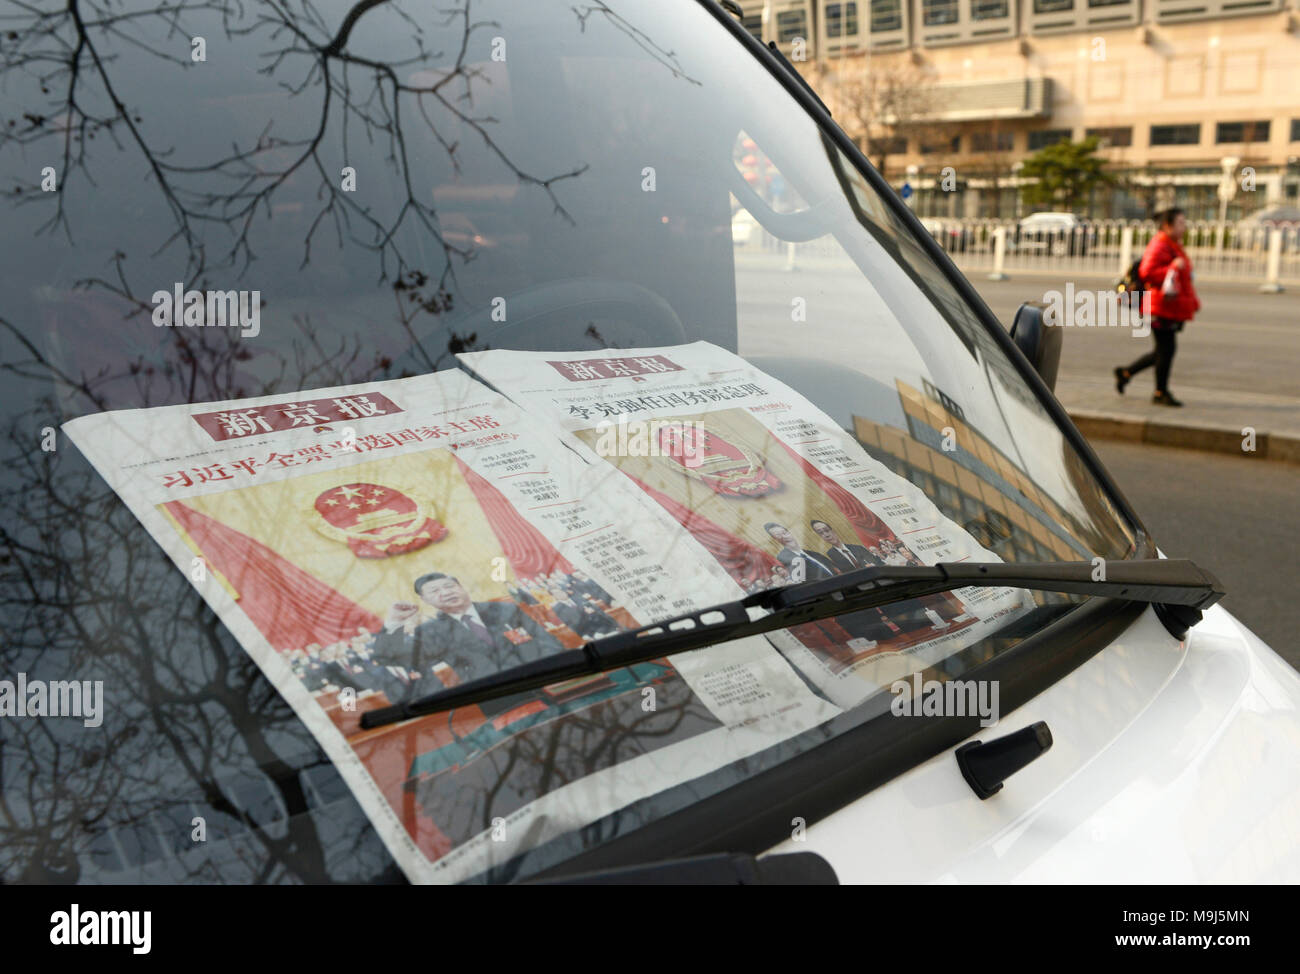 President Xi Jinping features on the front page of newspapers in a van window on a street in central Beijing, China - Stock Image